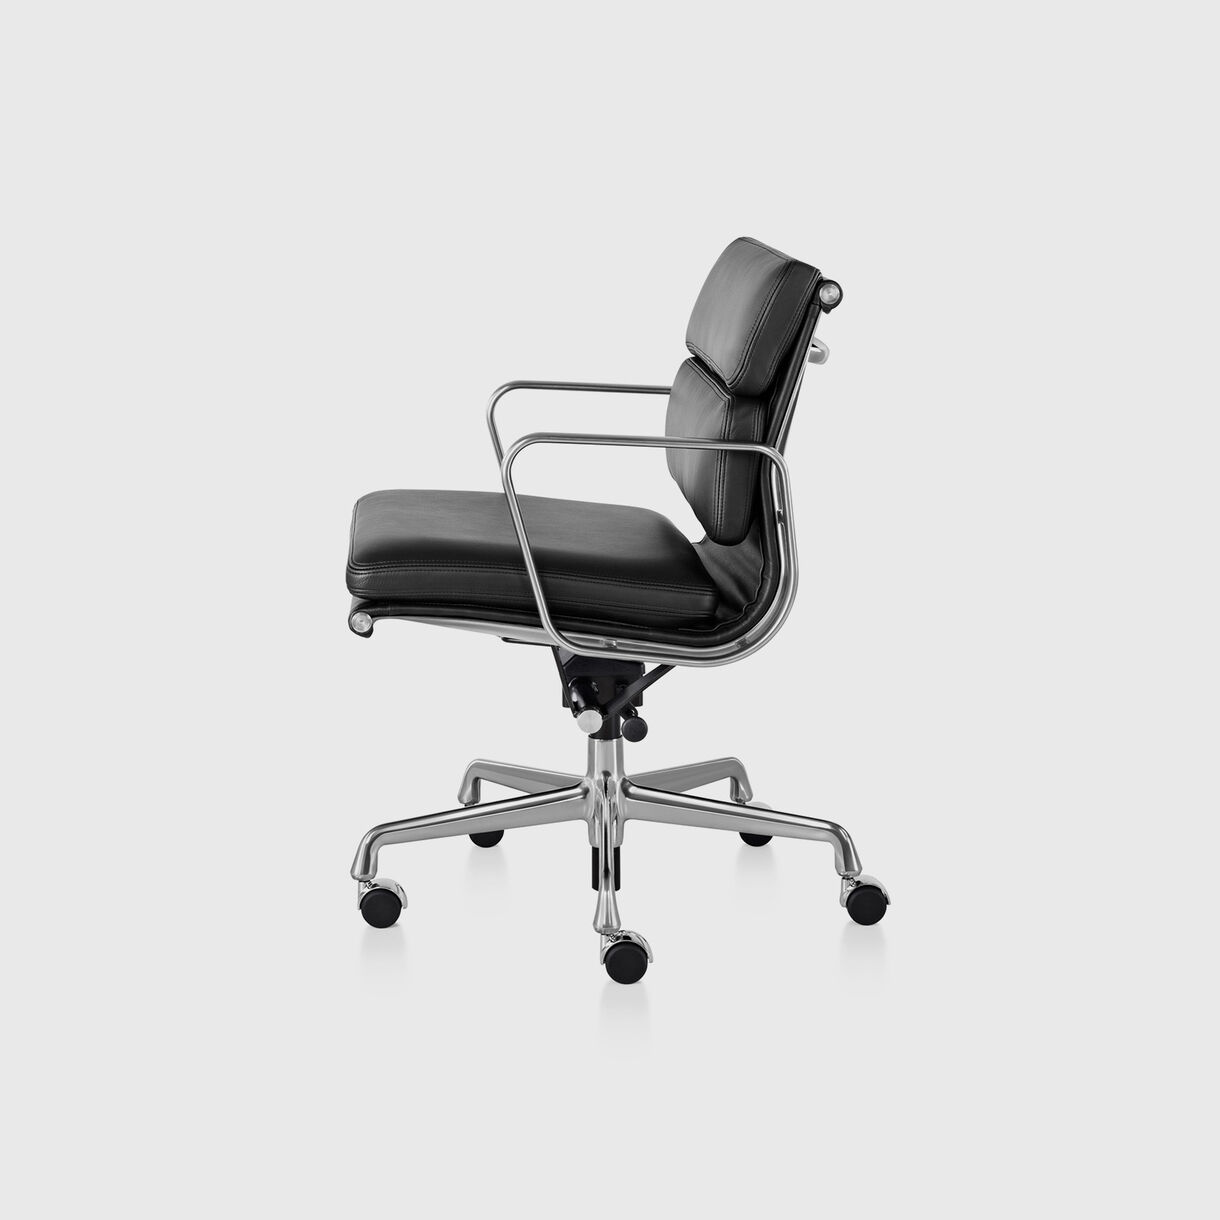 Eames Soft Pad Management Chair, Pneumatic, Polished Aluminium Frame & Black Leather